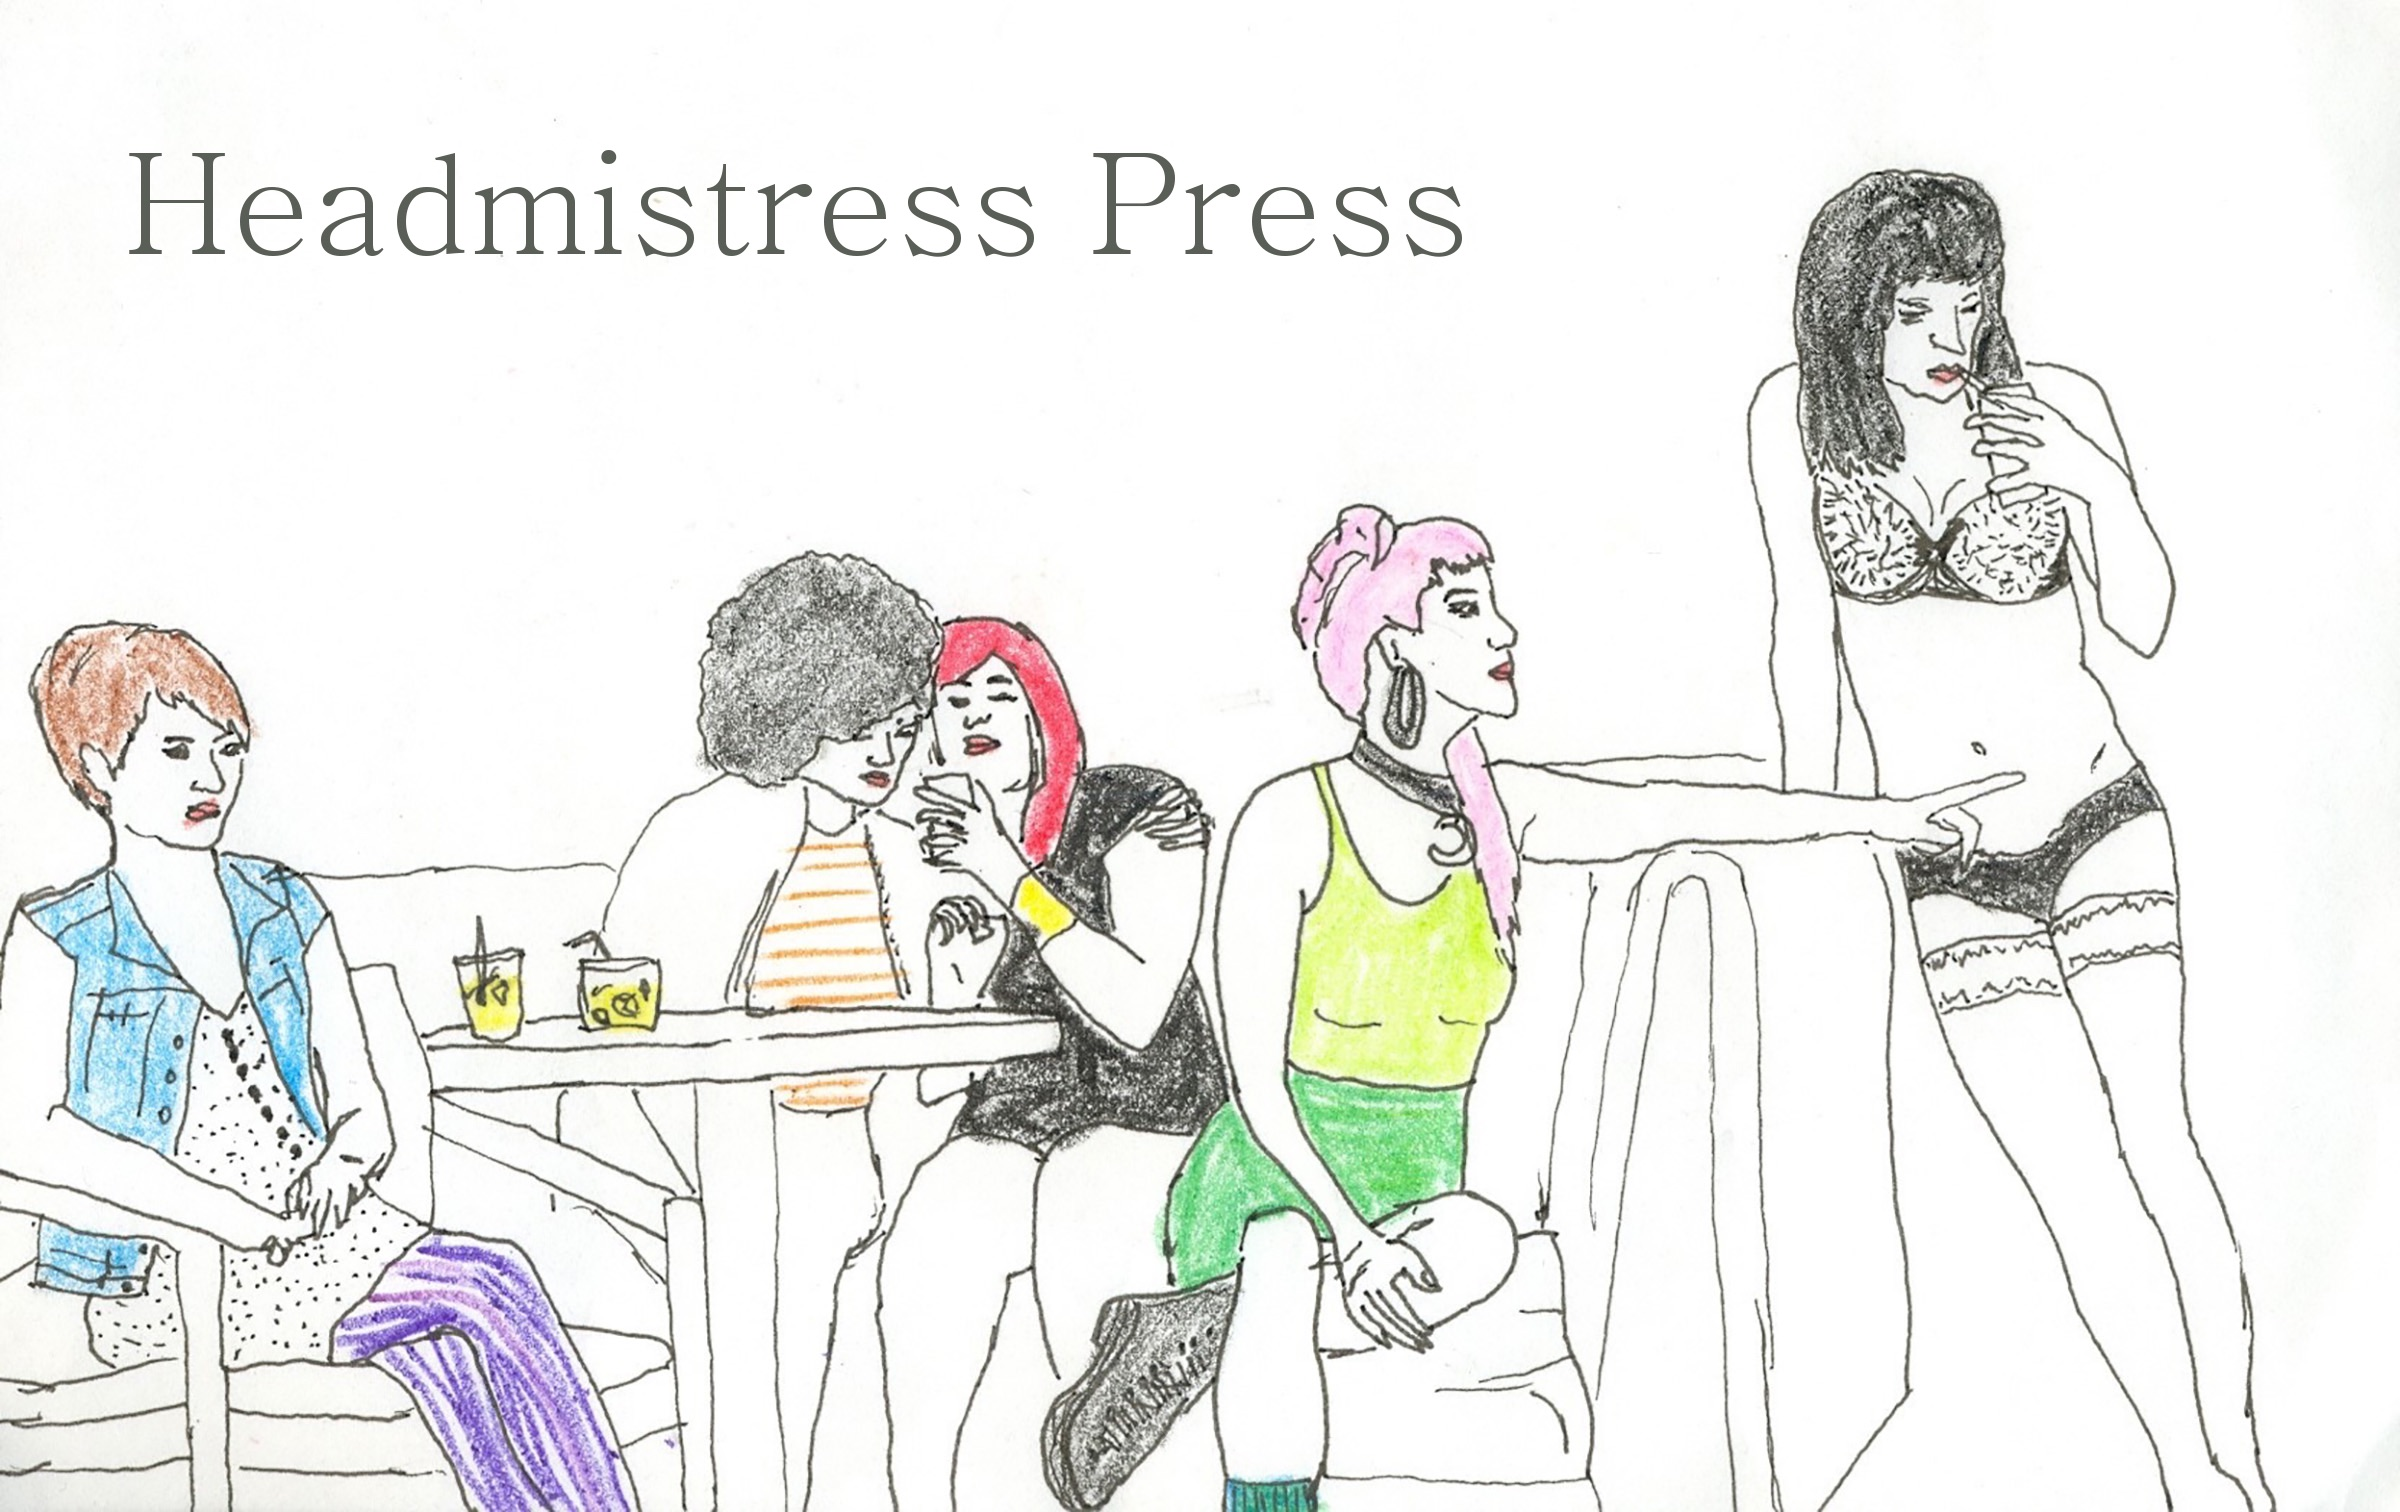 Headmistress Press